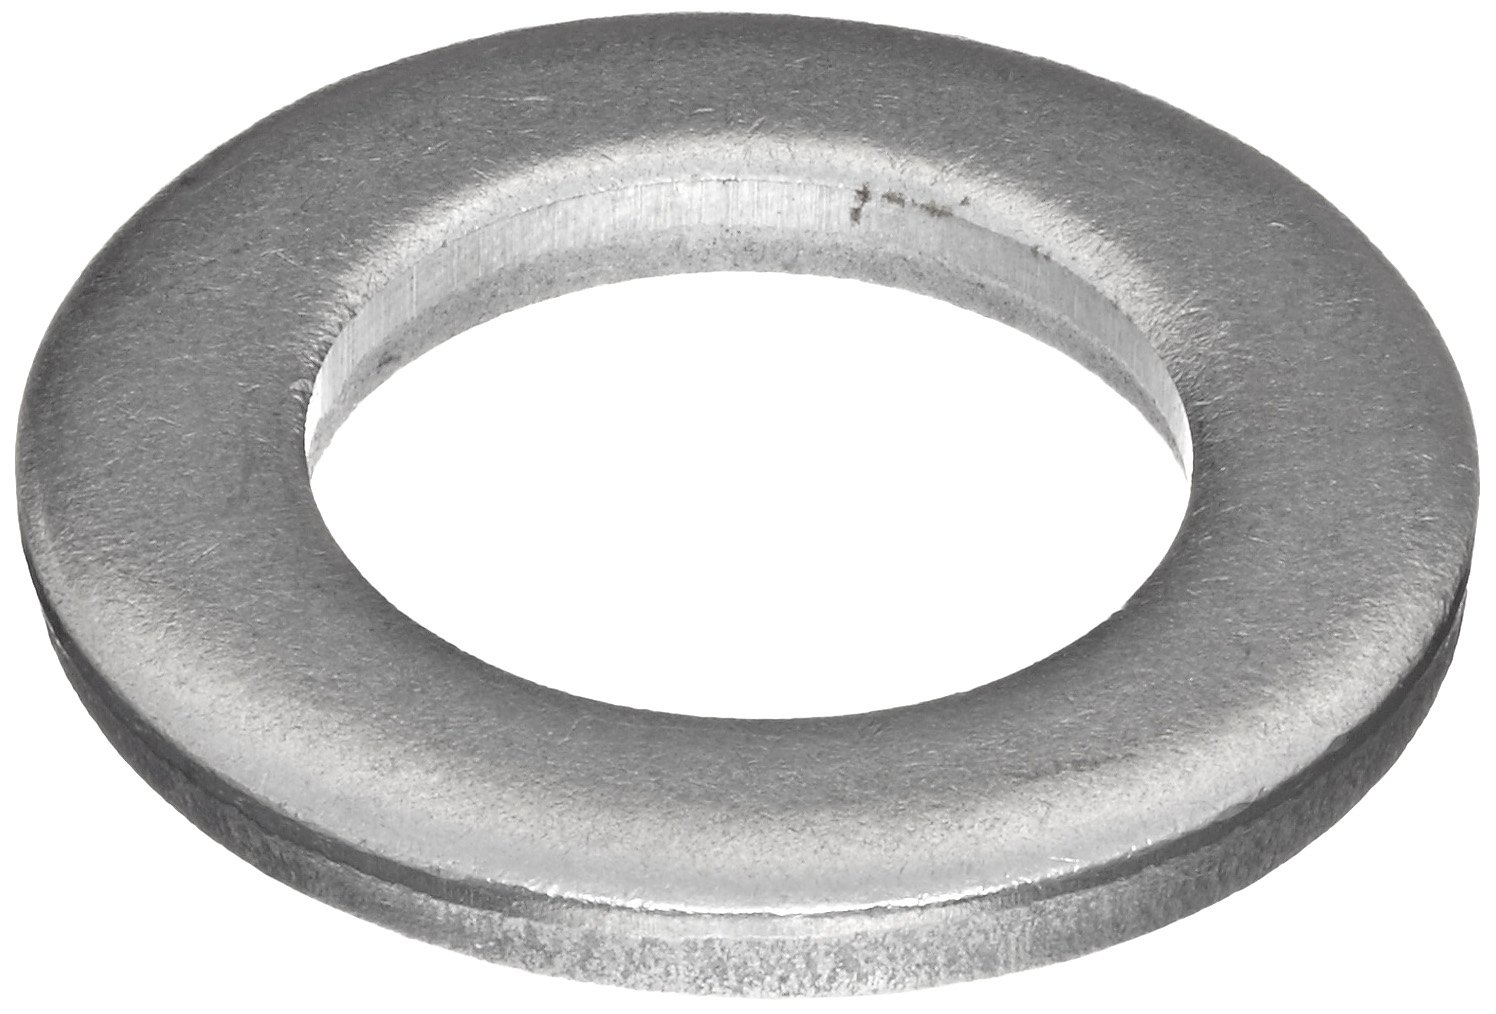 """C1006/C1020 Steel Round Shim, Unpolished (Mill) Finish, #1-5 Temper, ASTM A1008/ASTM A1011, 0.048"""" Thickness, 7/8"""" ID, 1-3/4"""" OD (Pack of 25)"""